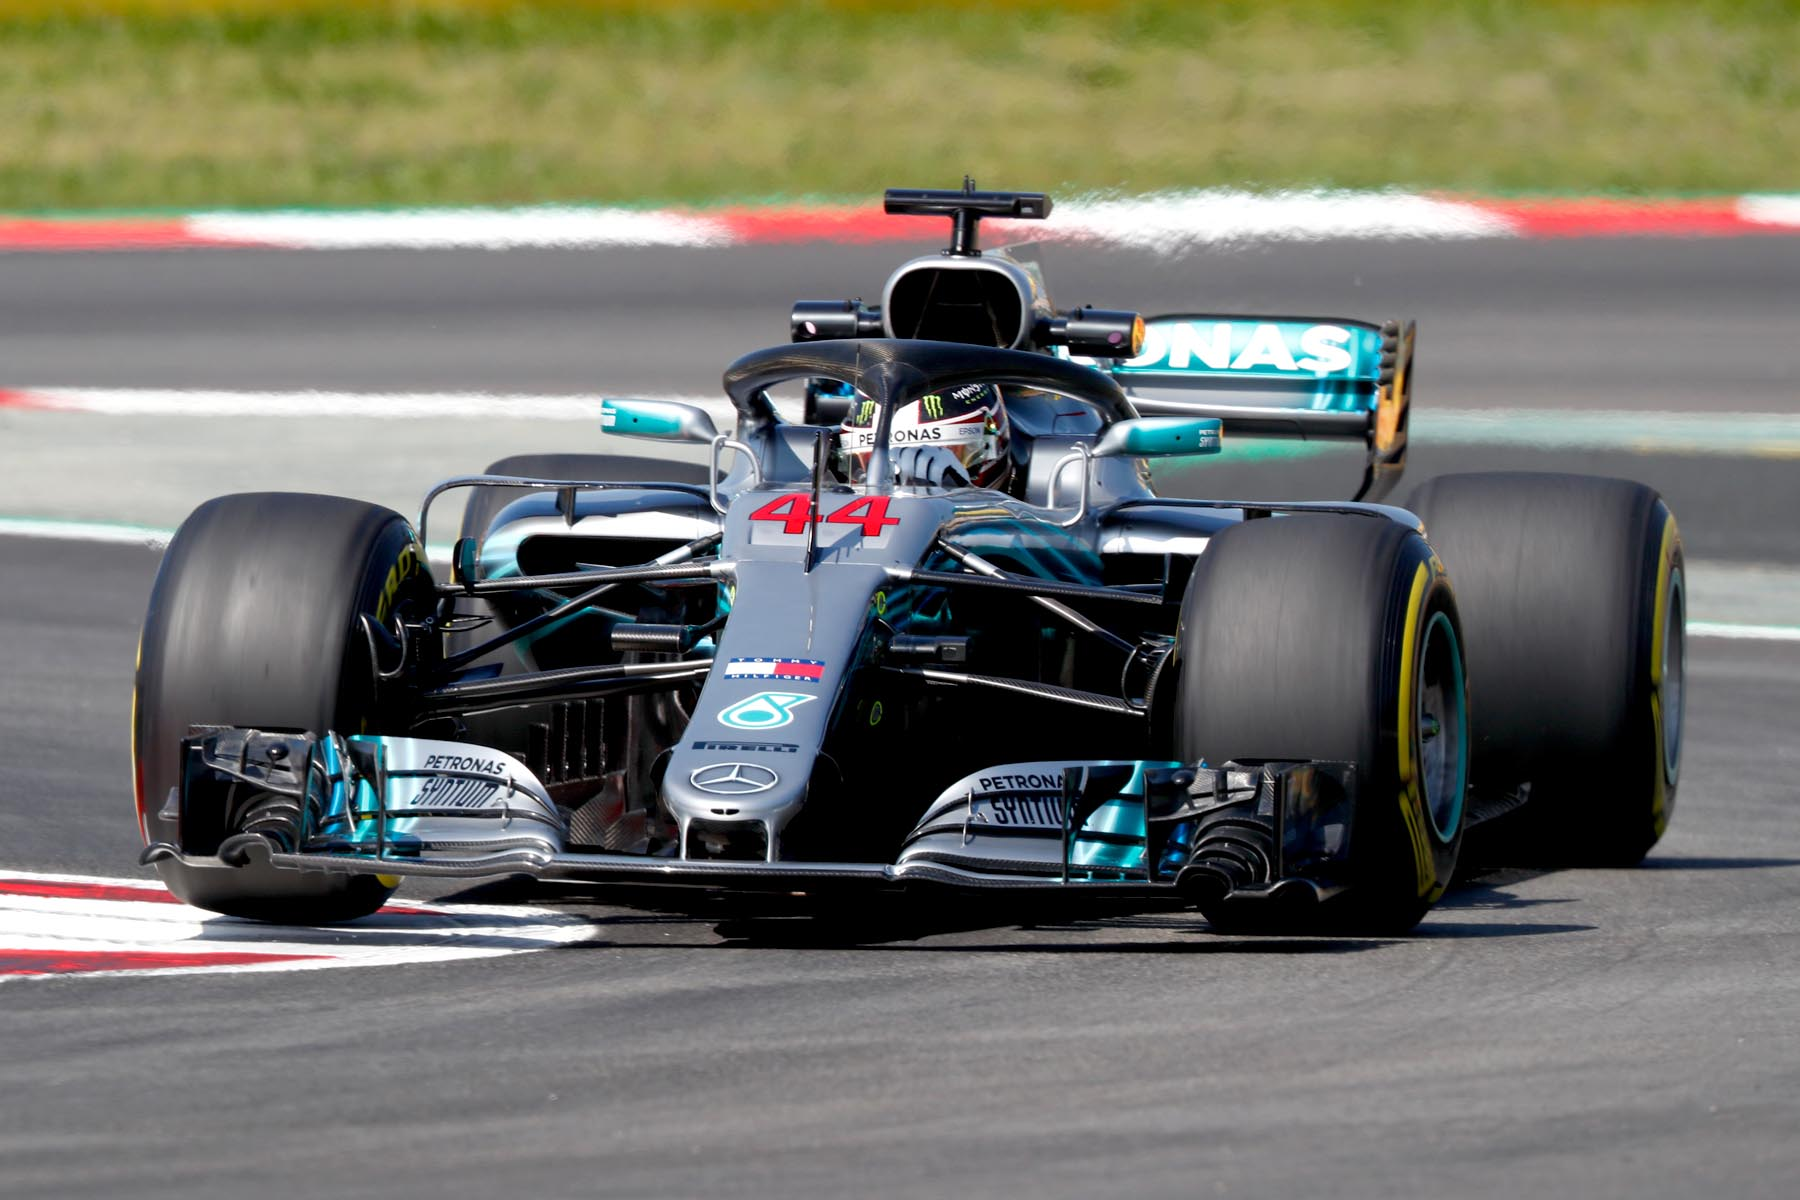 Lewis Hamilton on track at the 2018 Spanish Grand Prix.